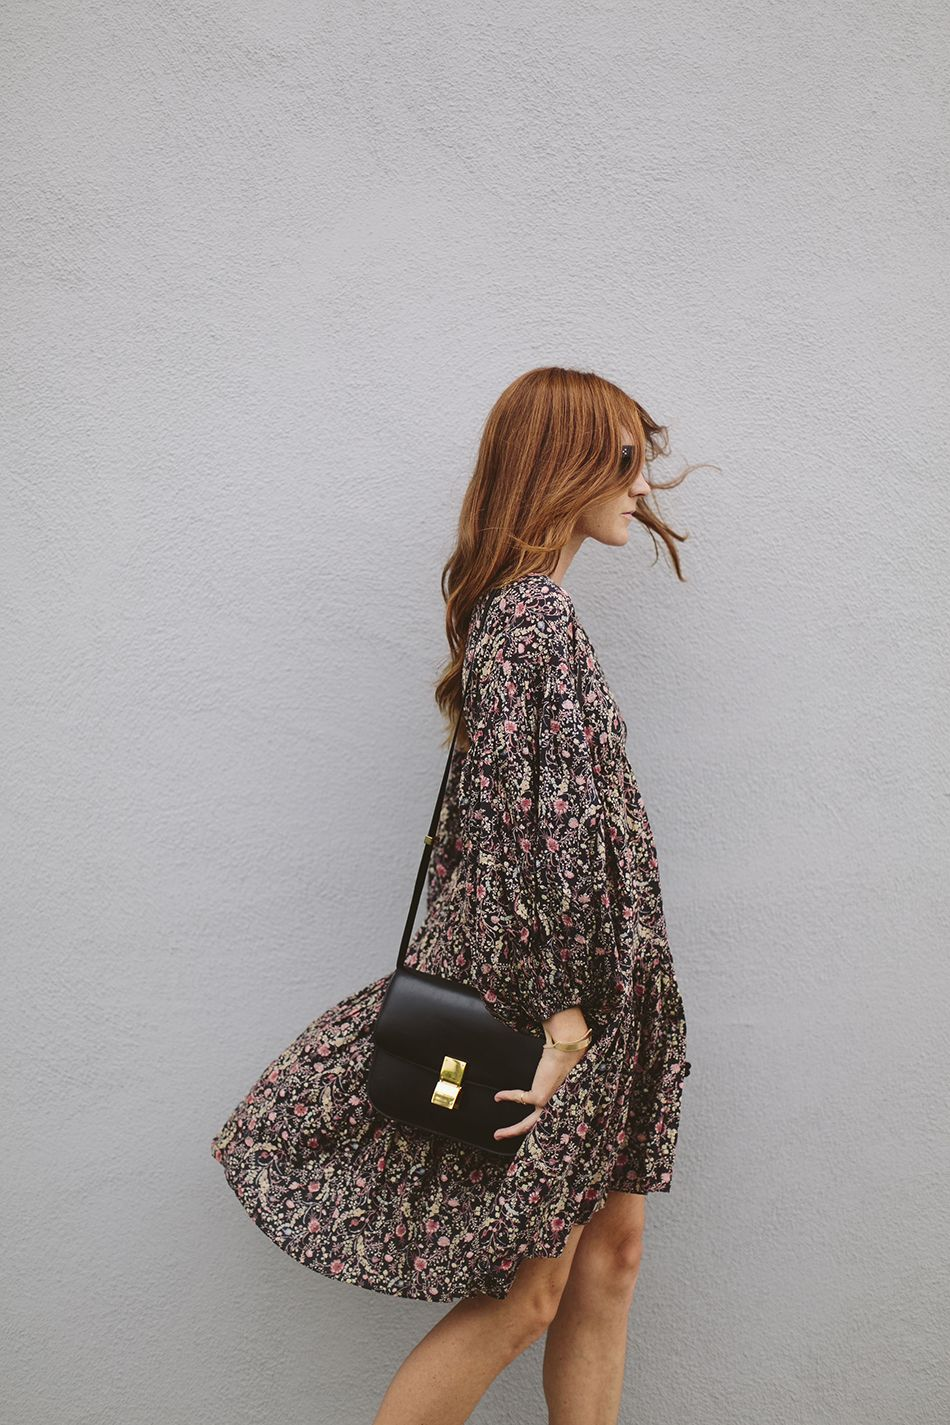 Transition your wardrobe from Summer to Fall with dark florals.